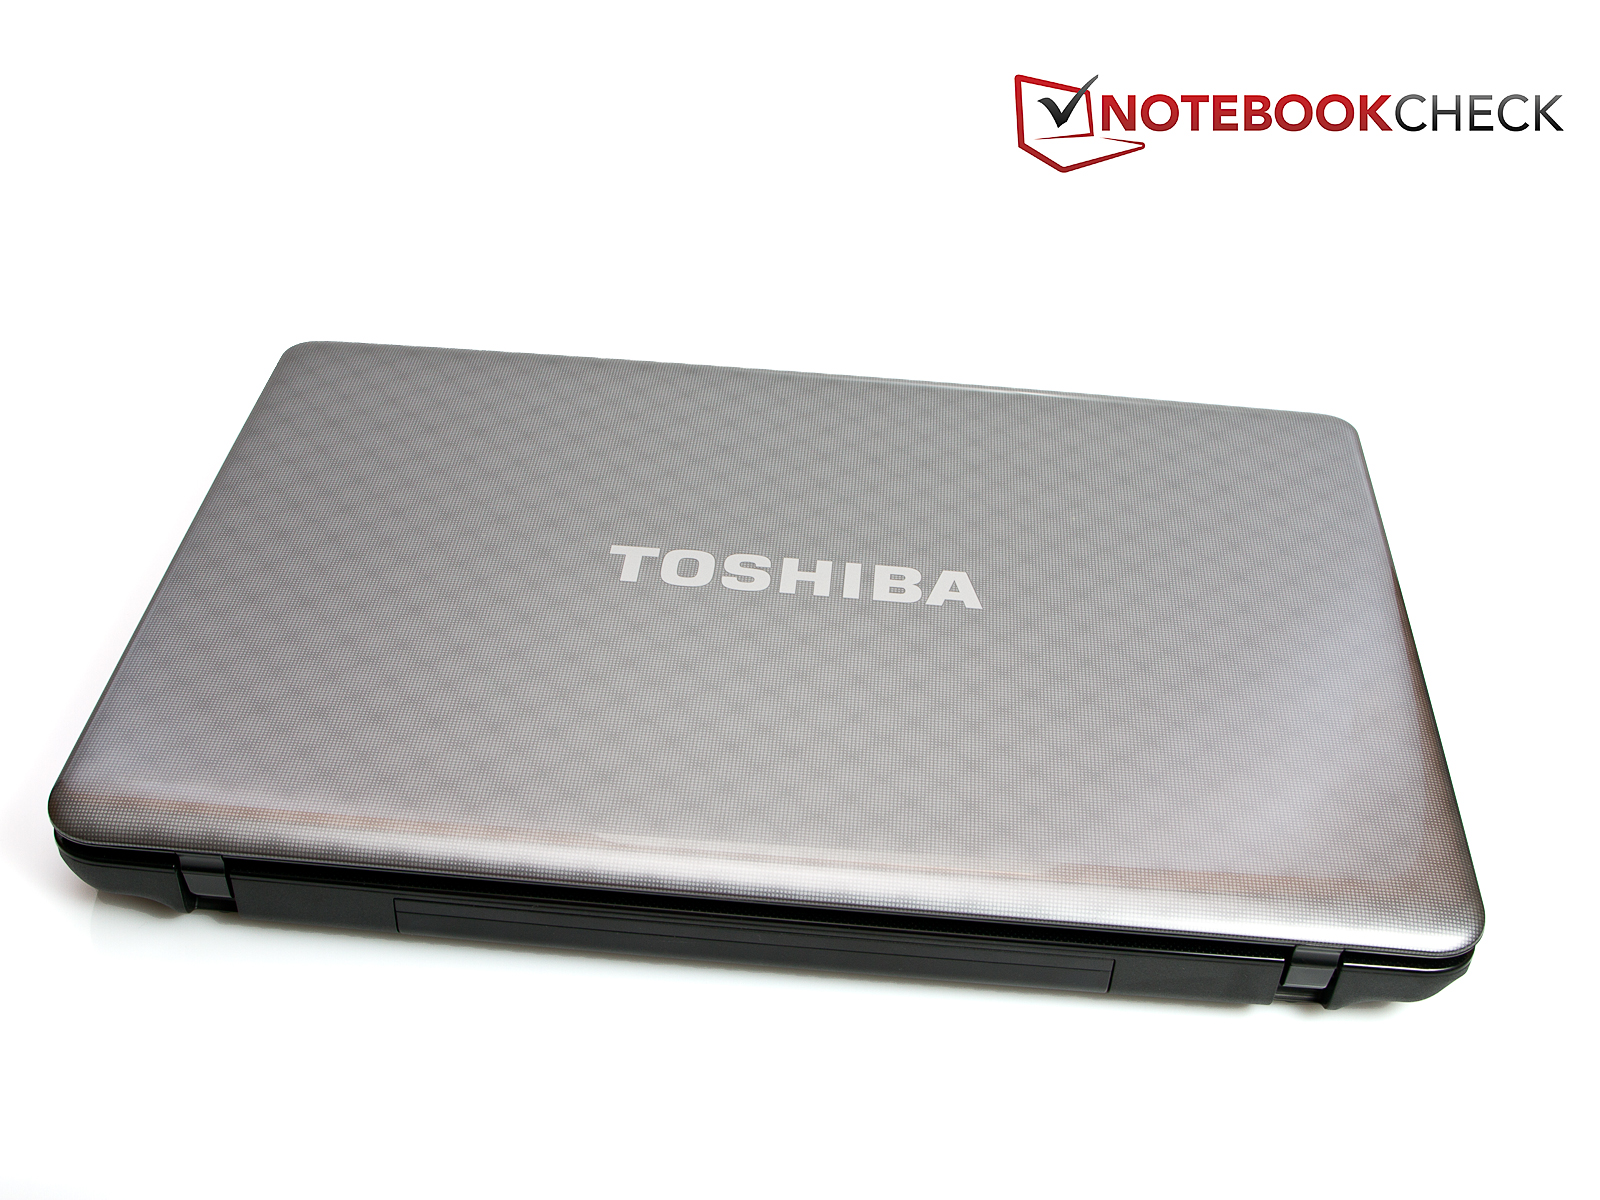 Review Toshiba Satellite L775 125 Notebook Notebookcheck